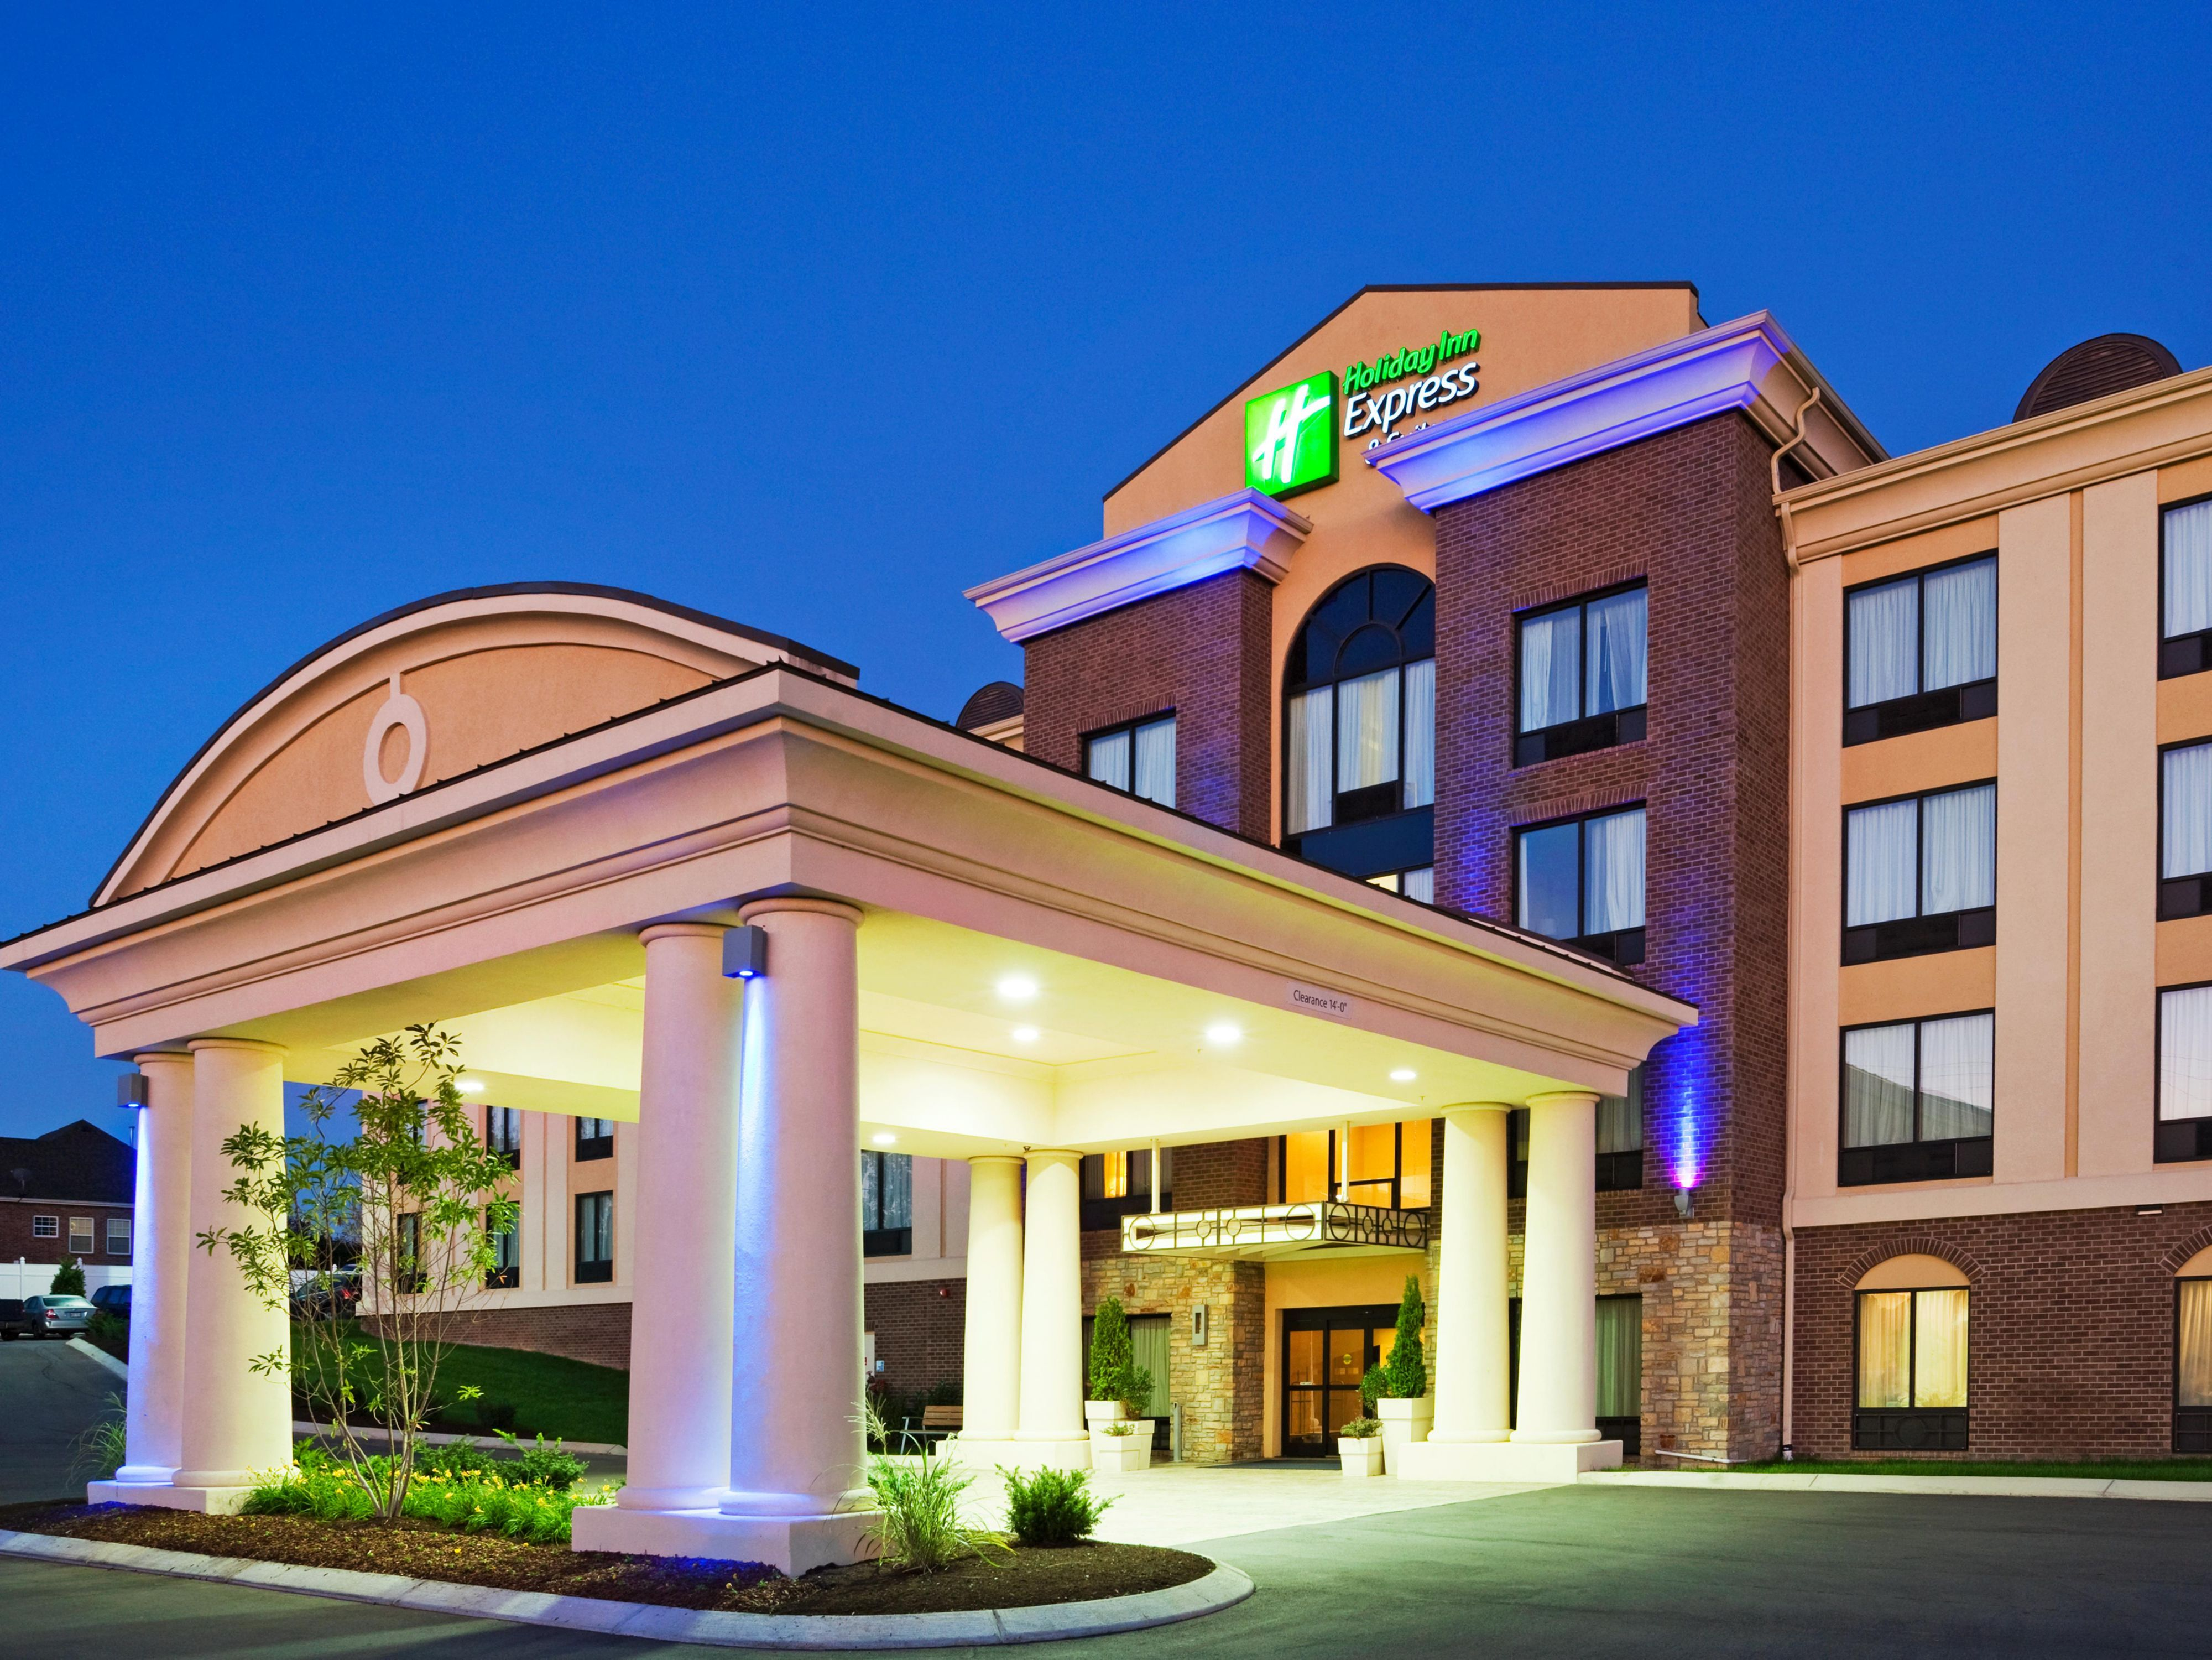 Welcome to the Holiday Inn Express & Suites Smyrna!